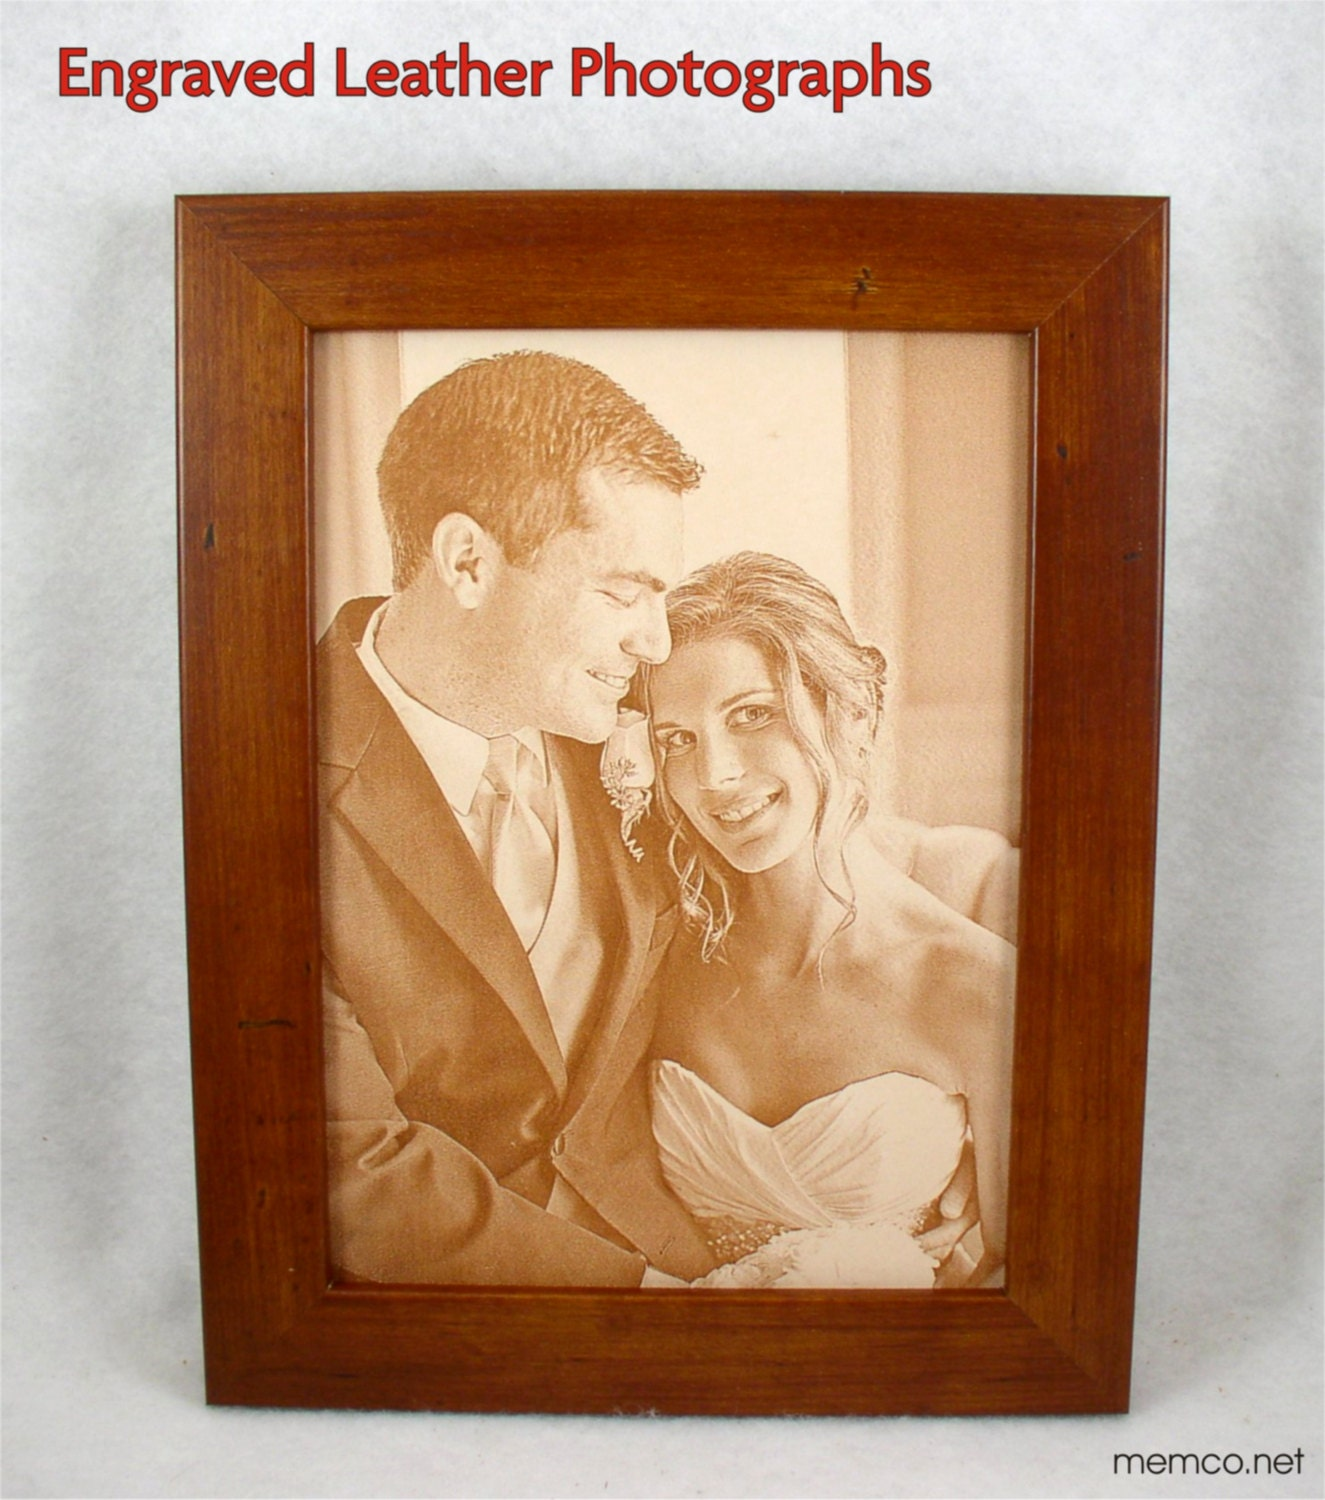 3rd Wedding Anniversary Leather Gifts: 3rd Wedding Anniversary Gift Leather Photograph Engraved In